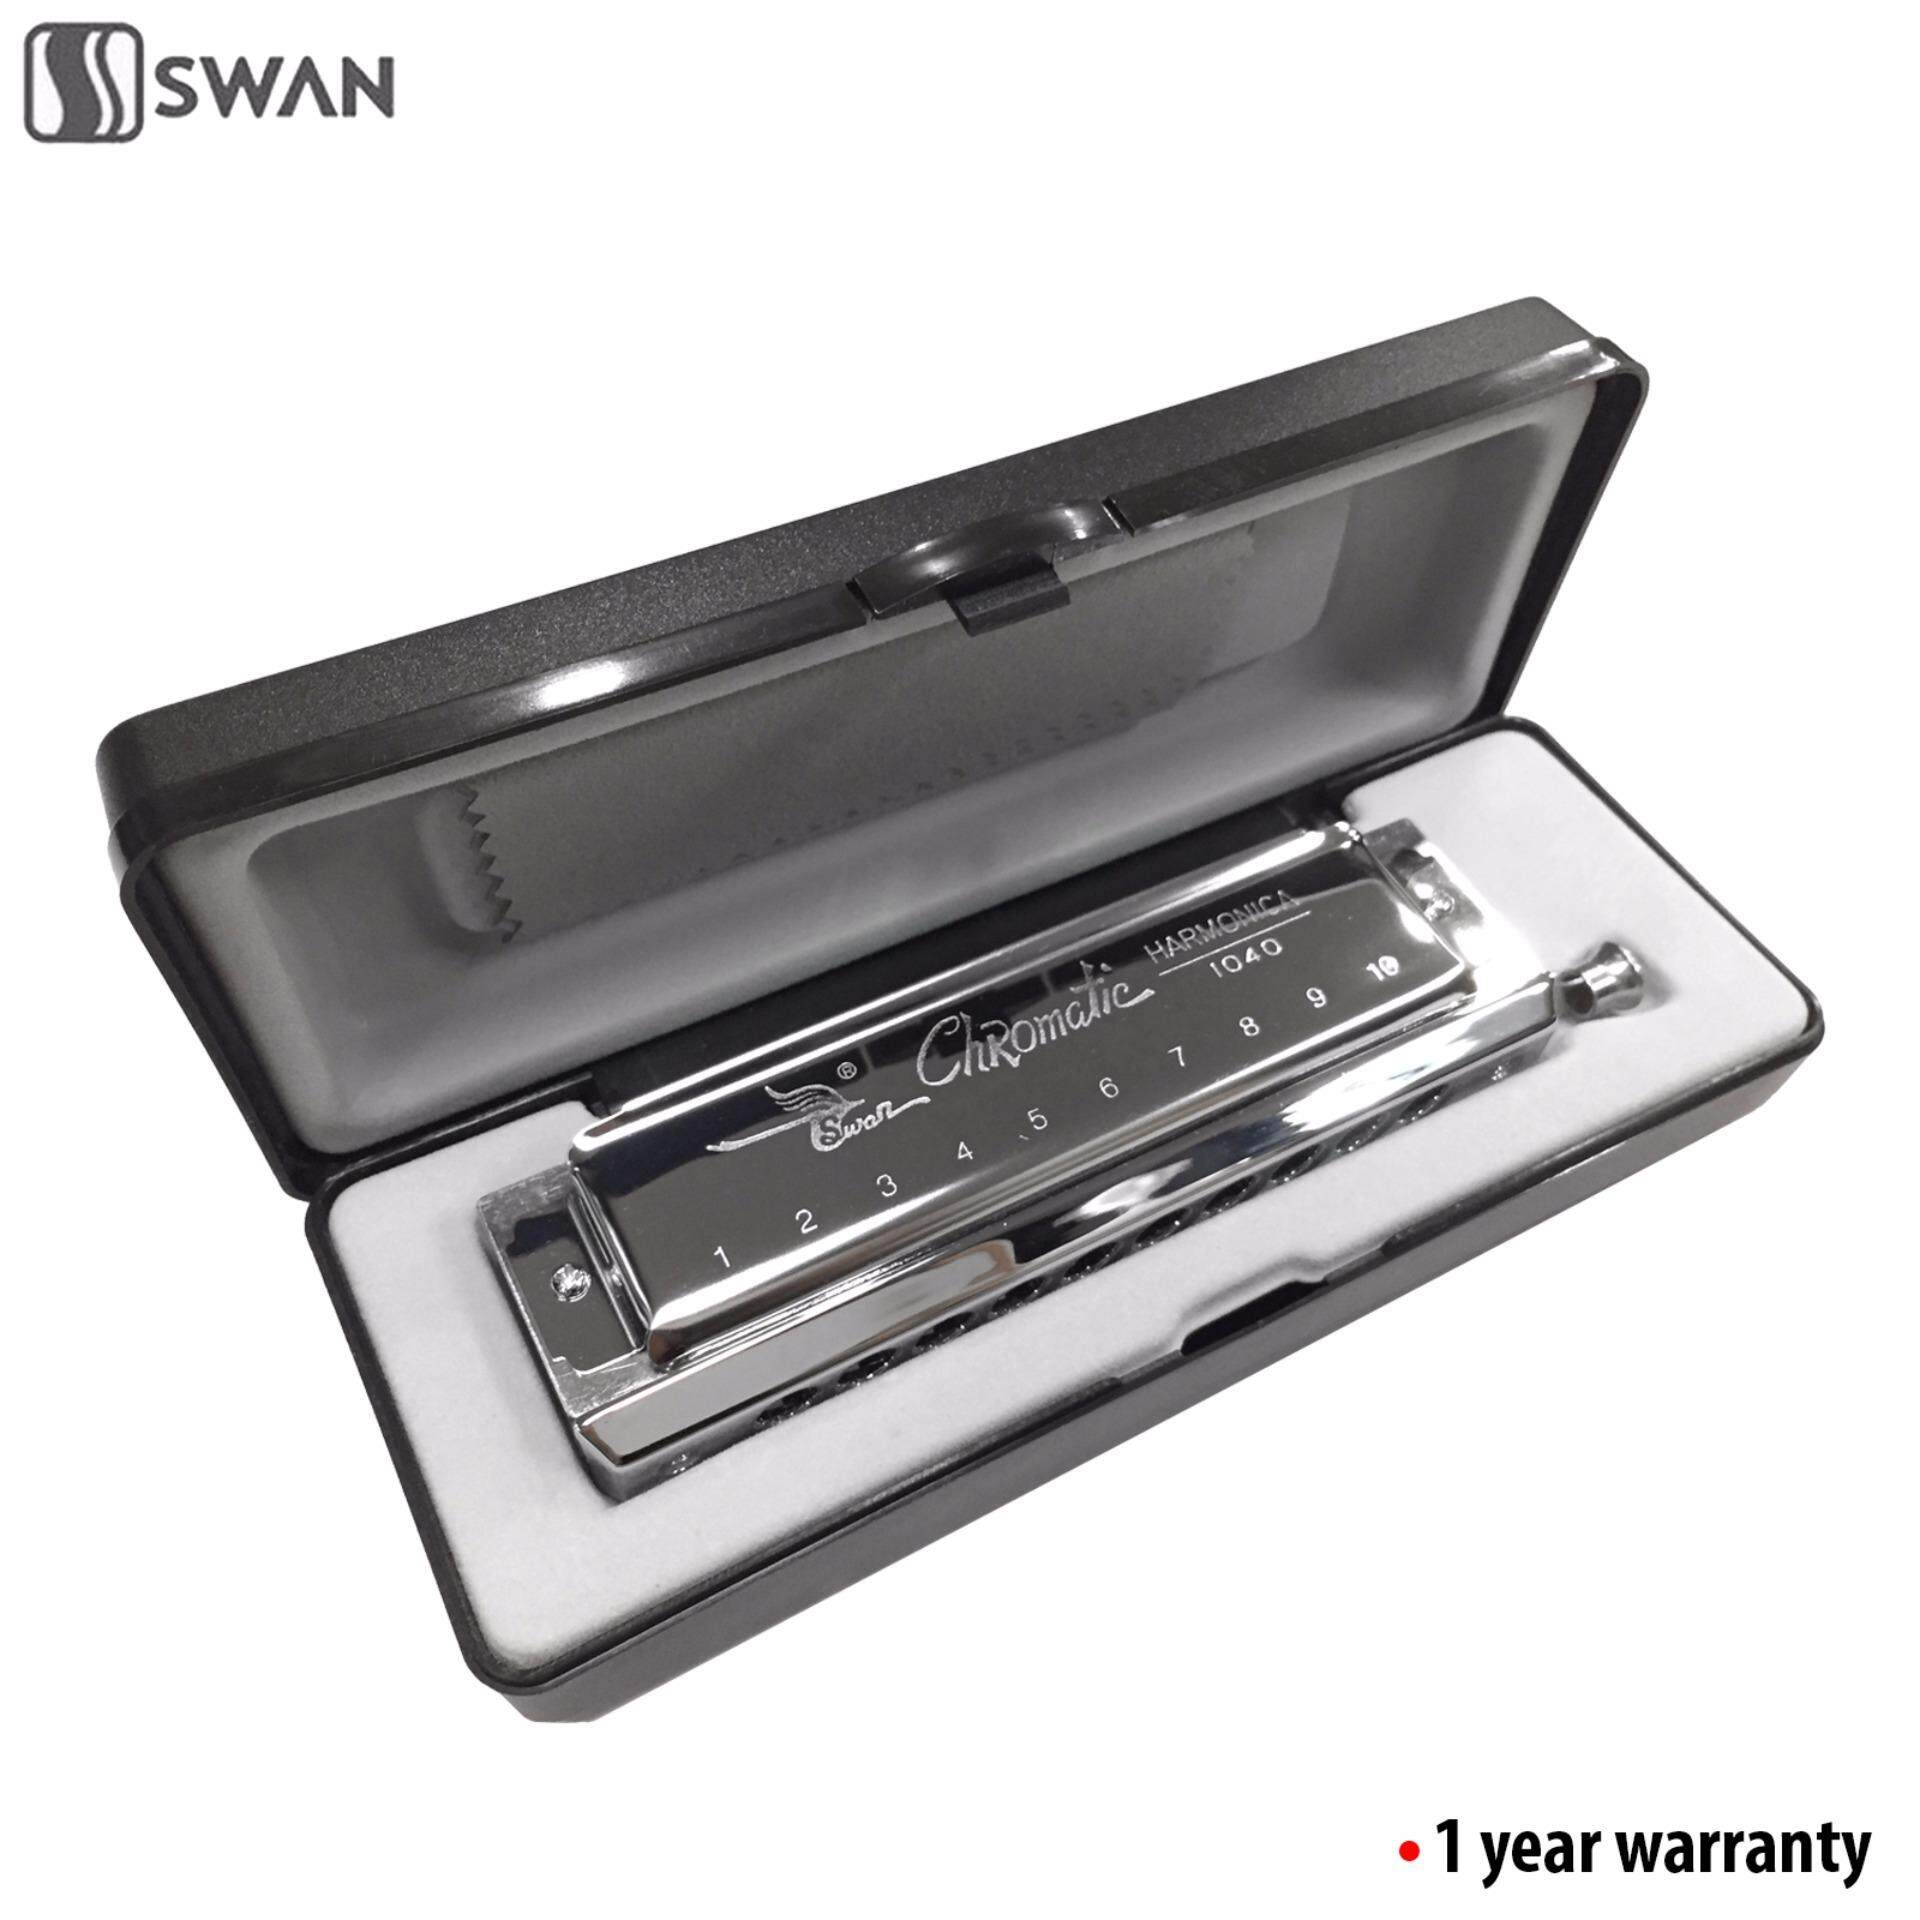 Swan SW1040 10 Hole 40 Tone Chromatic Harmonica Mouth Organ With Black Box (Professional) image